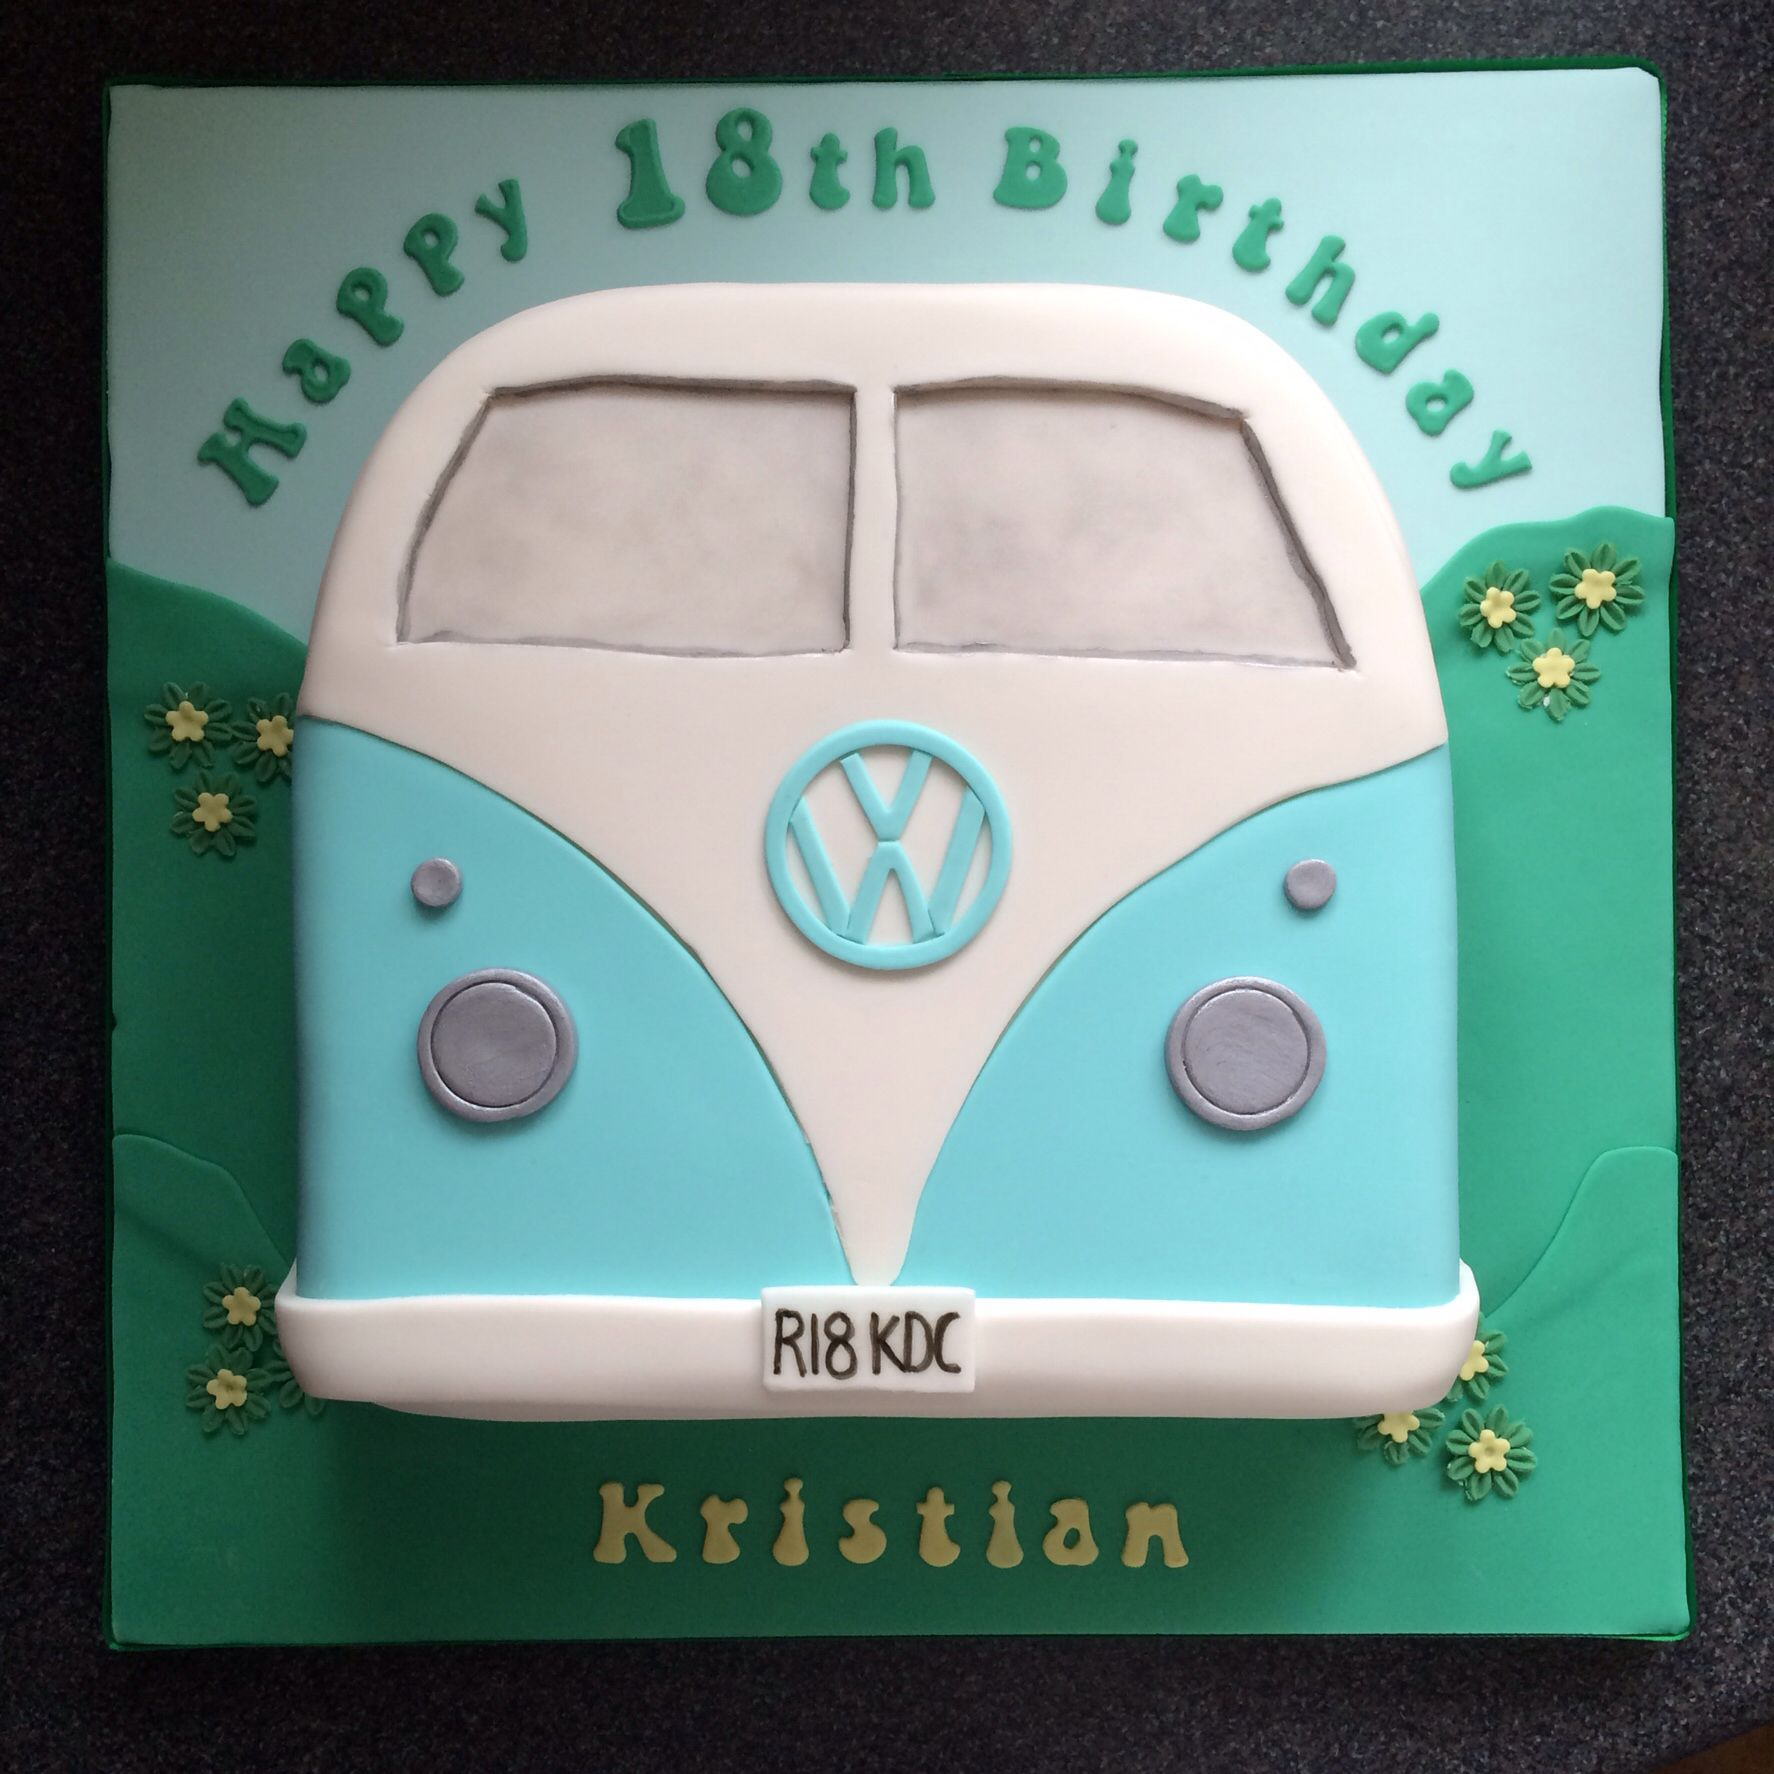 18th Birthday Party Ideas Limo Hire Party Bus: VW Campervan Cake 18th Birthday